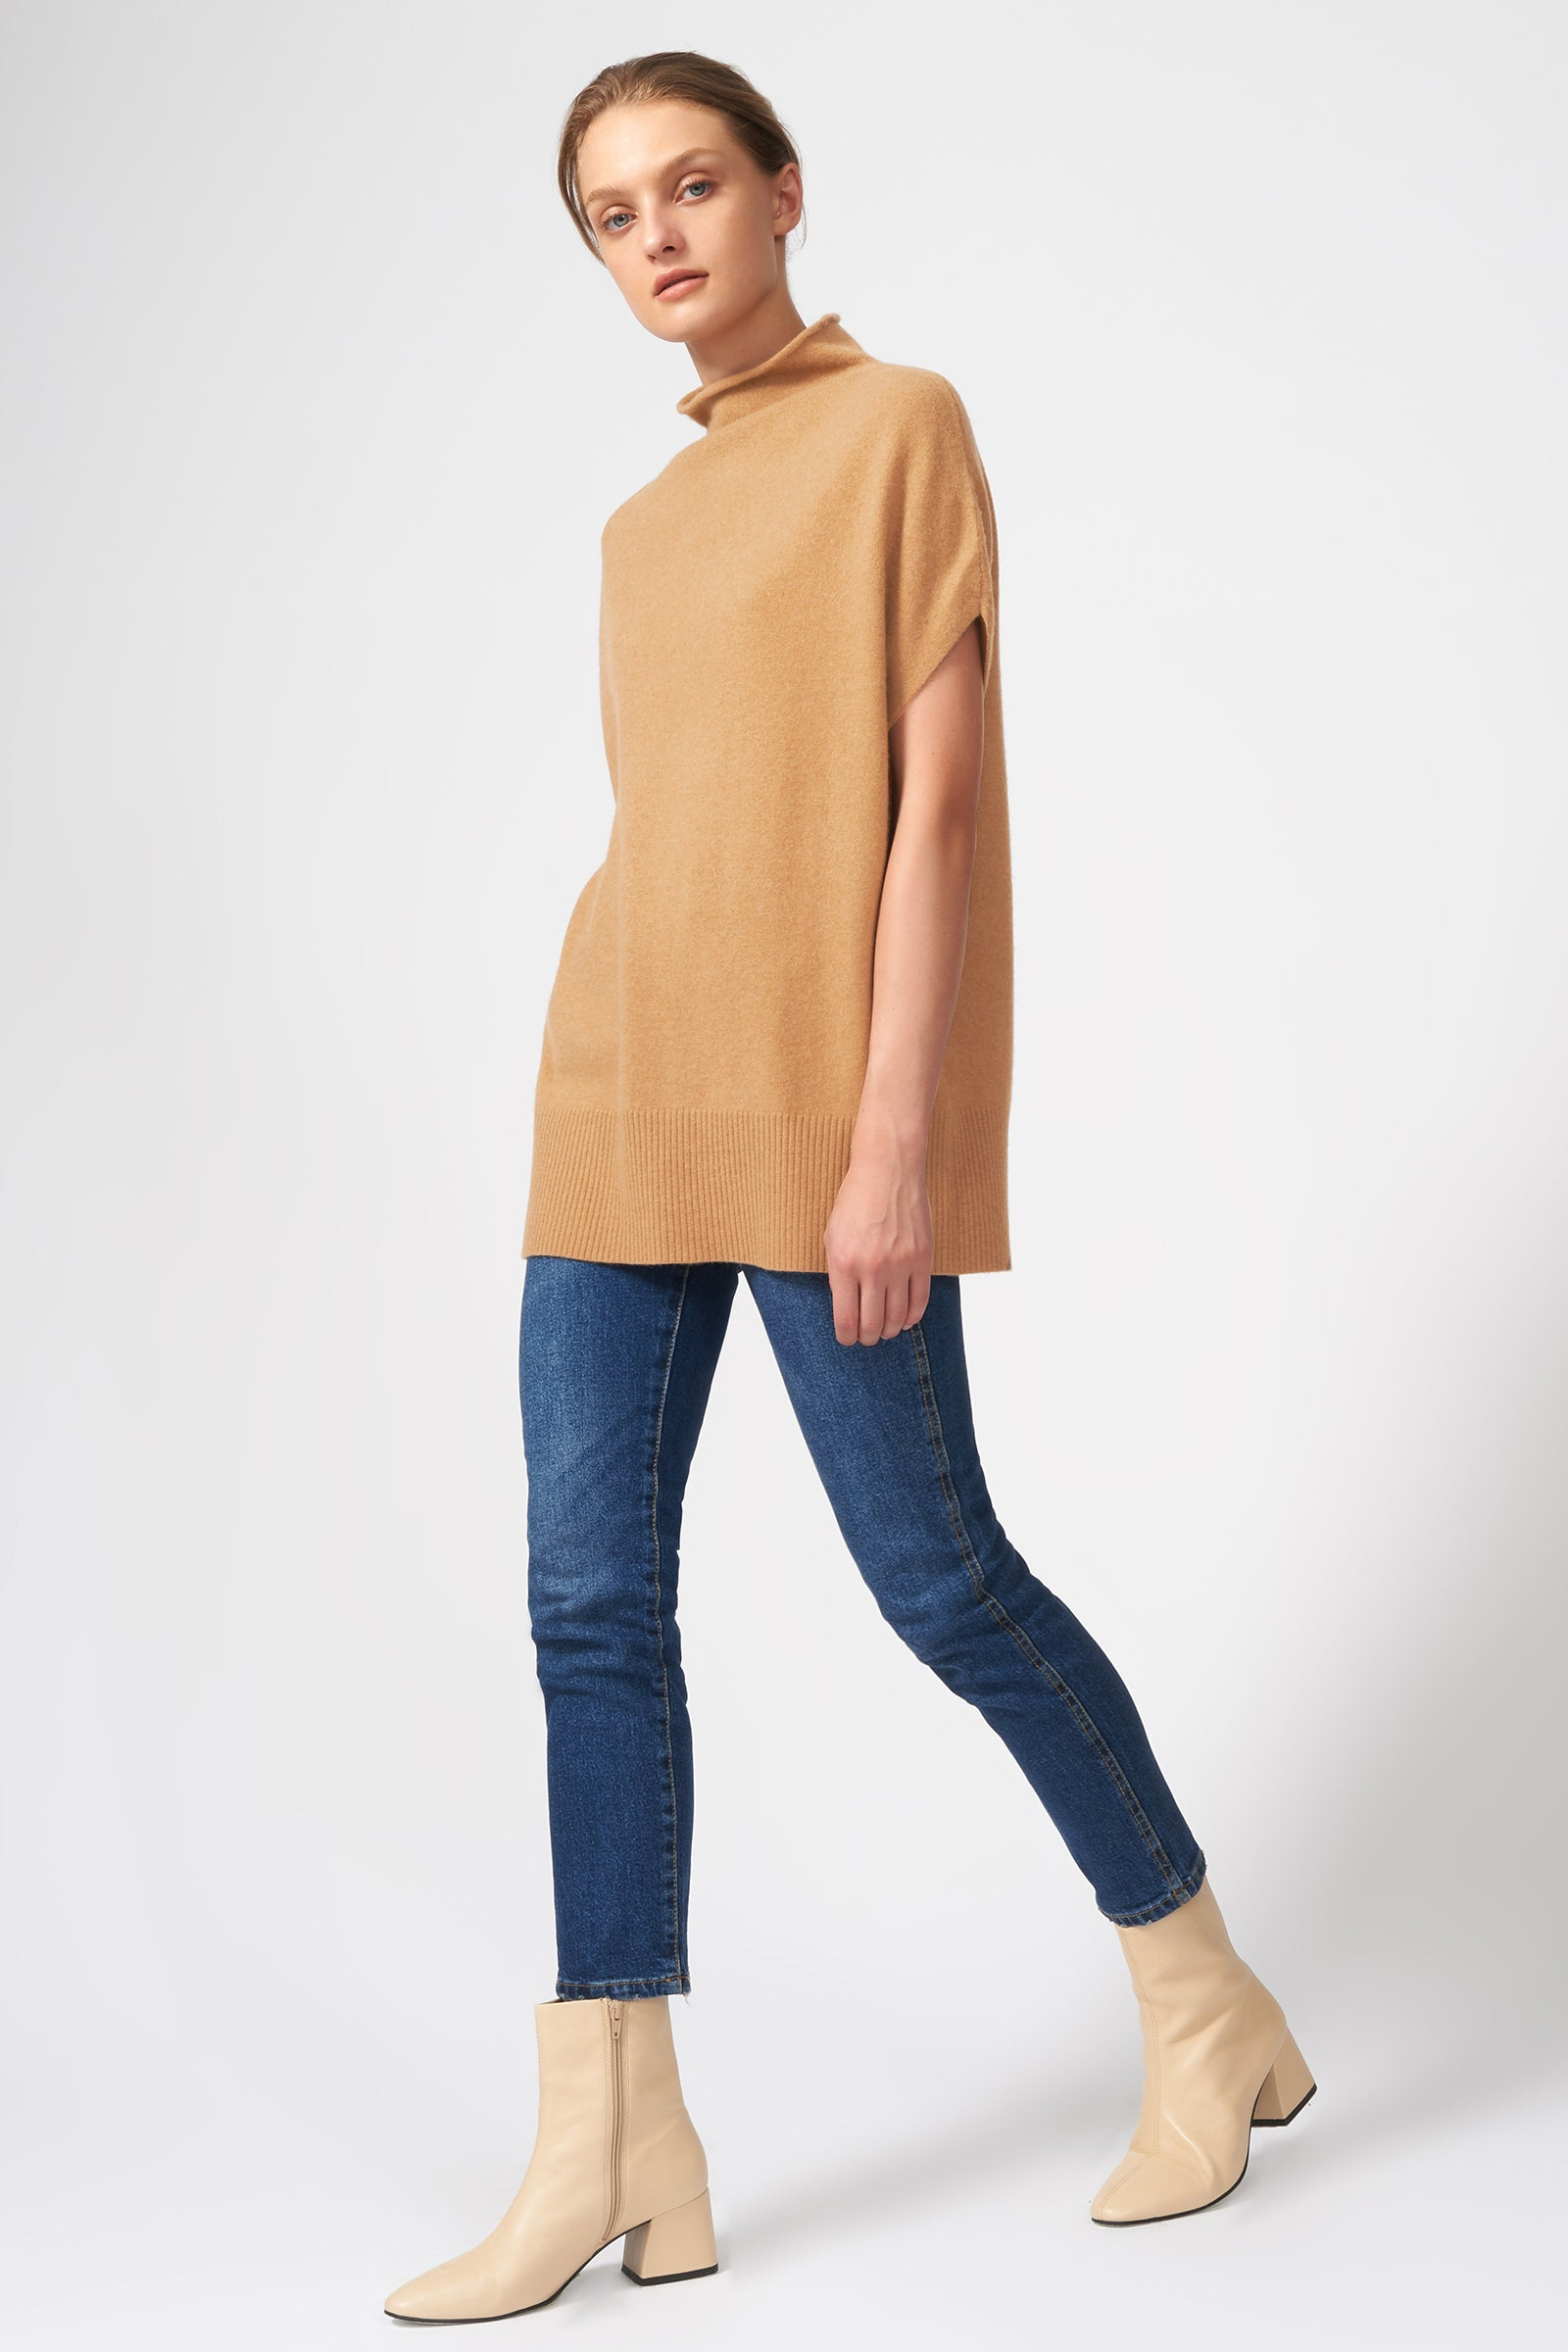 Kal Rieman Cashmere Funnelneck in Camel on Model Front View